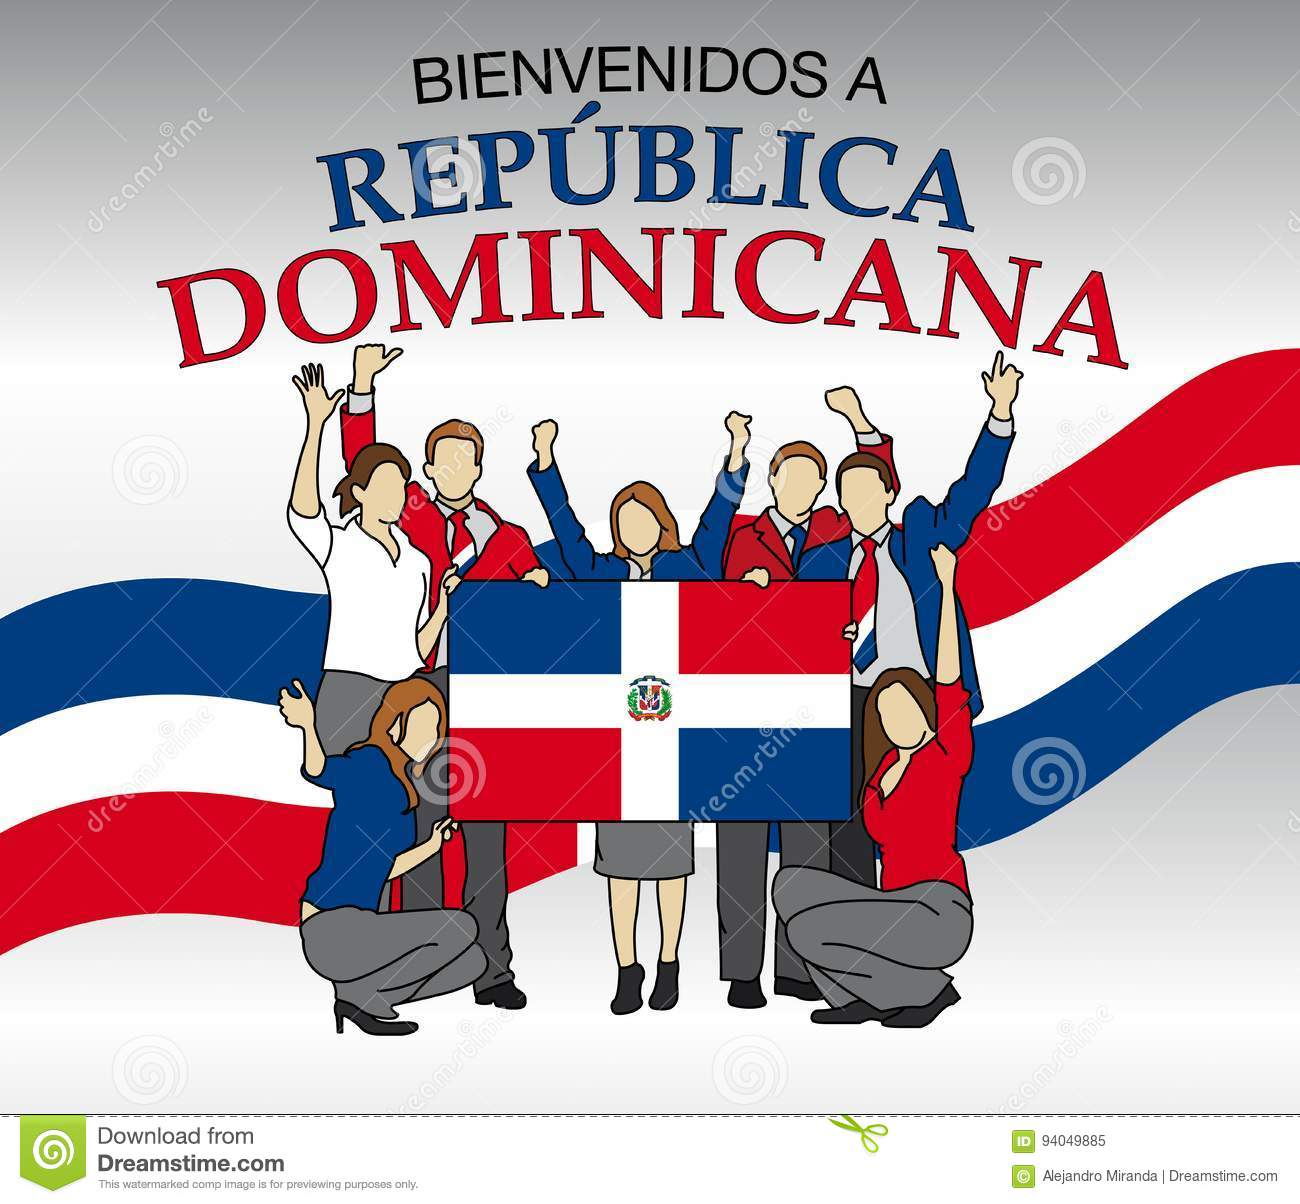 In republic the Do speak they spanish dominican